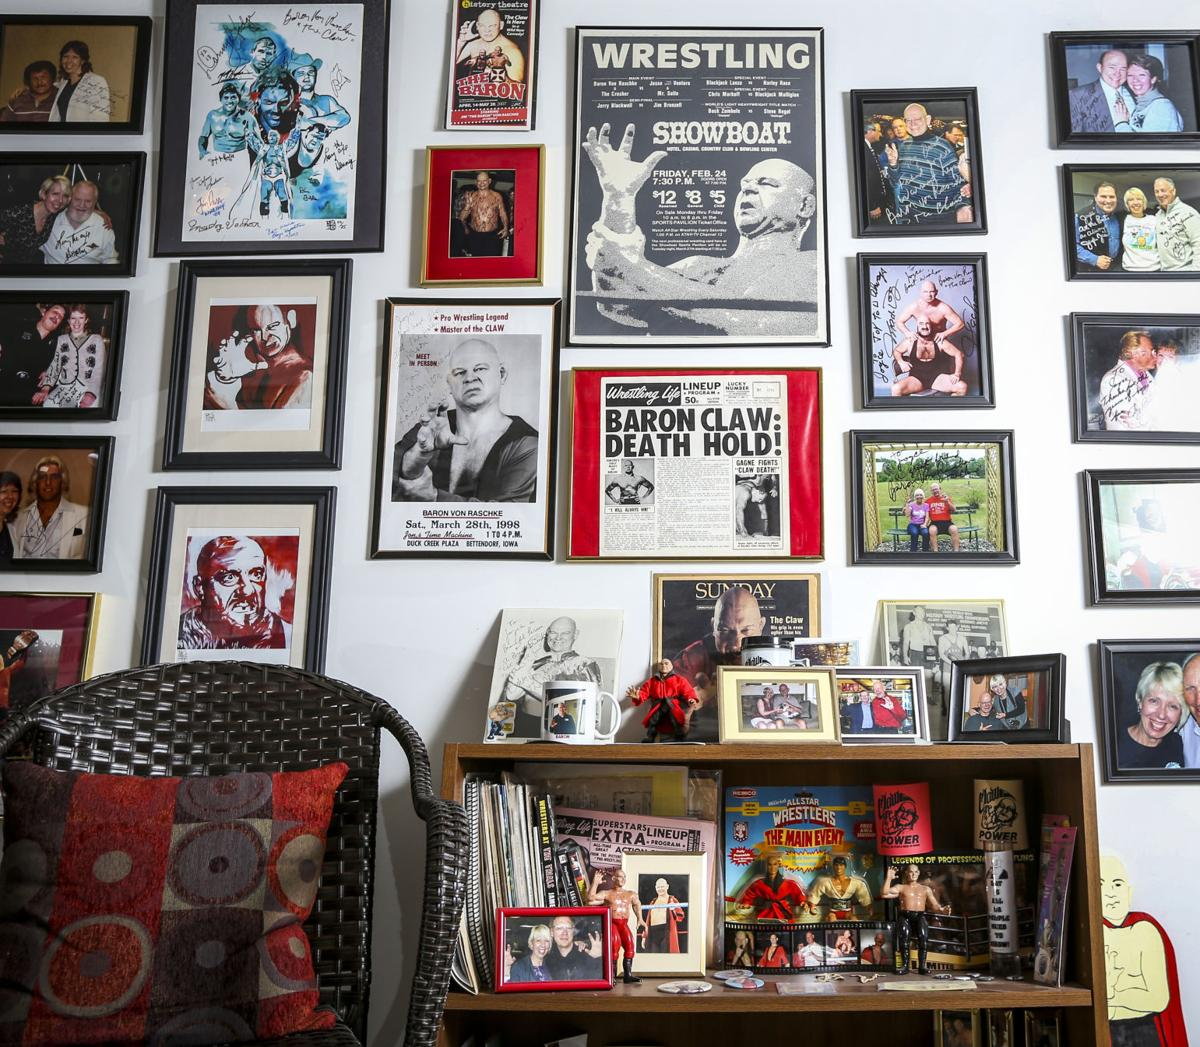 Notes @ Noon: Pro wrestling aficionado turns basement into 'fan cave' |  Notes @ Noon | qctimes.com